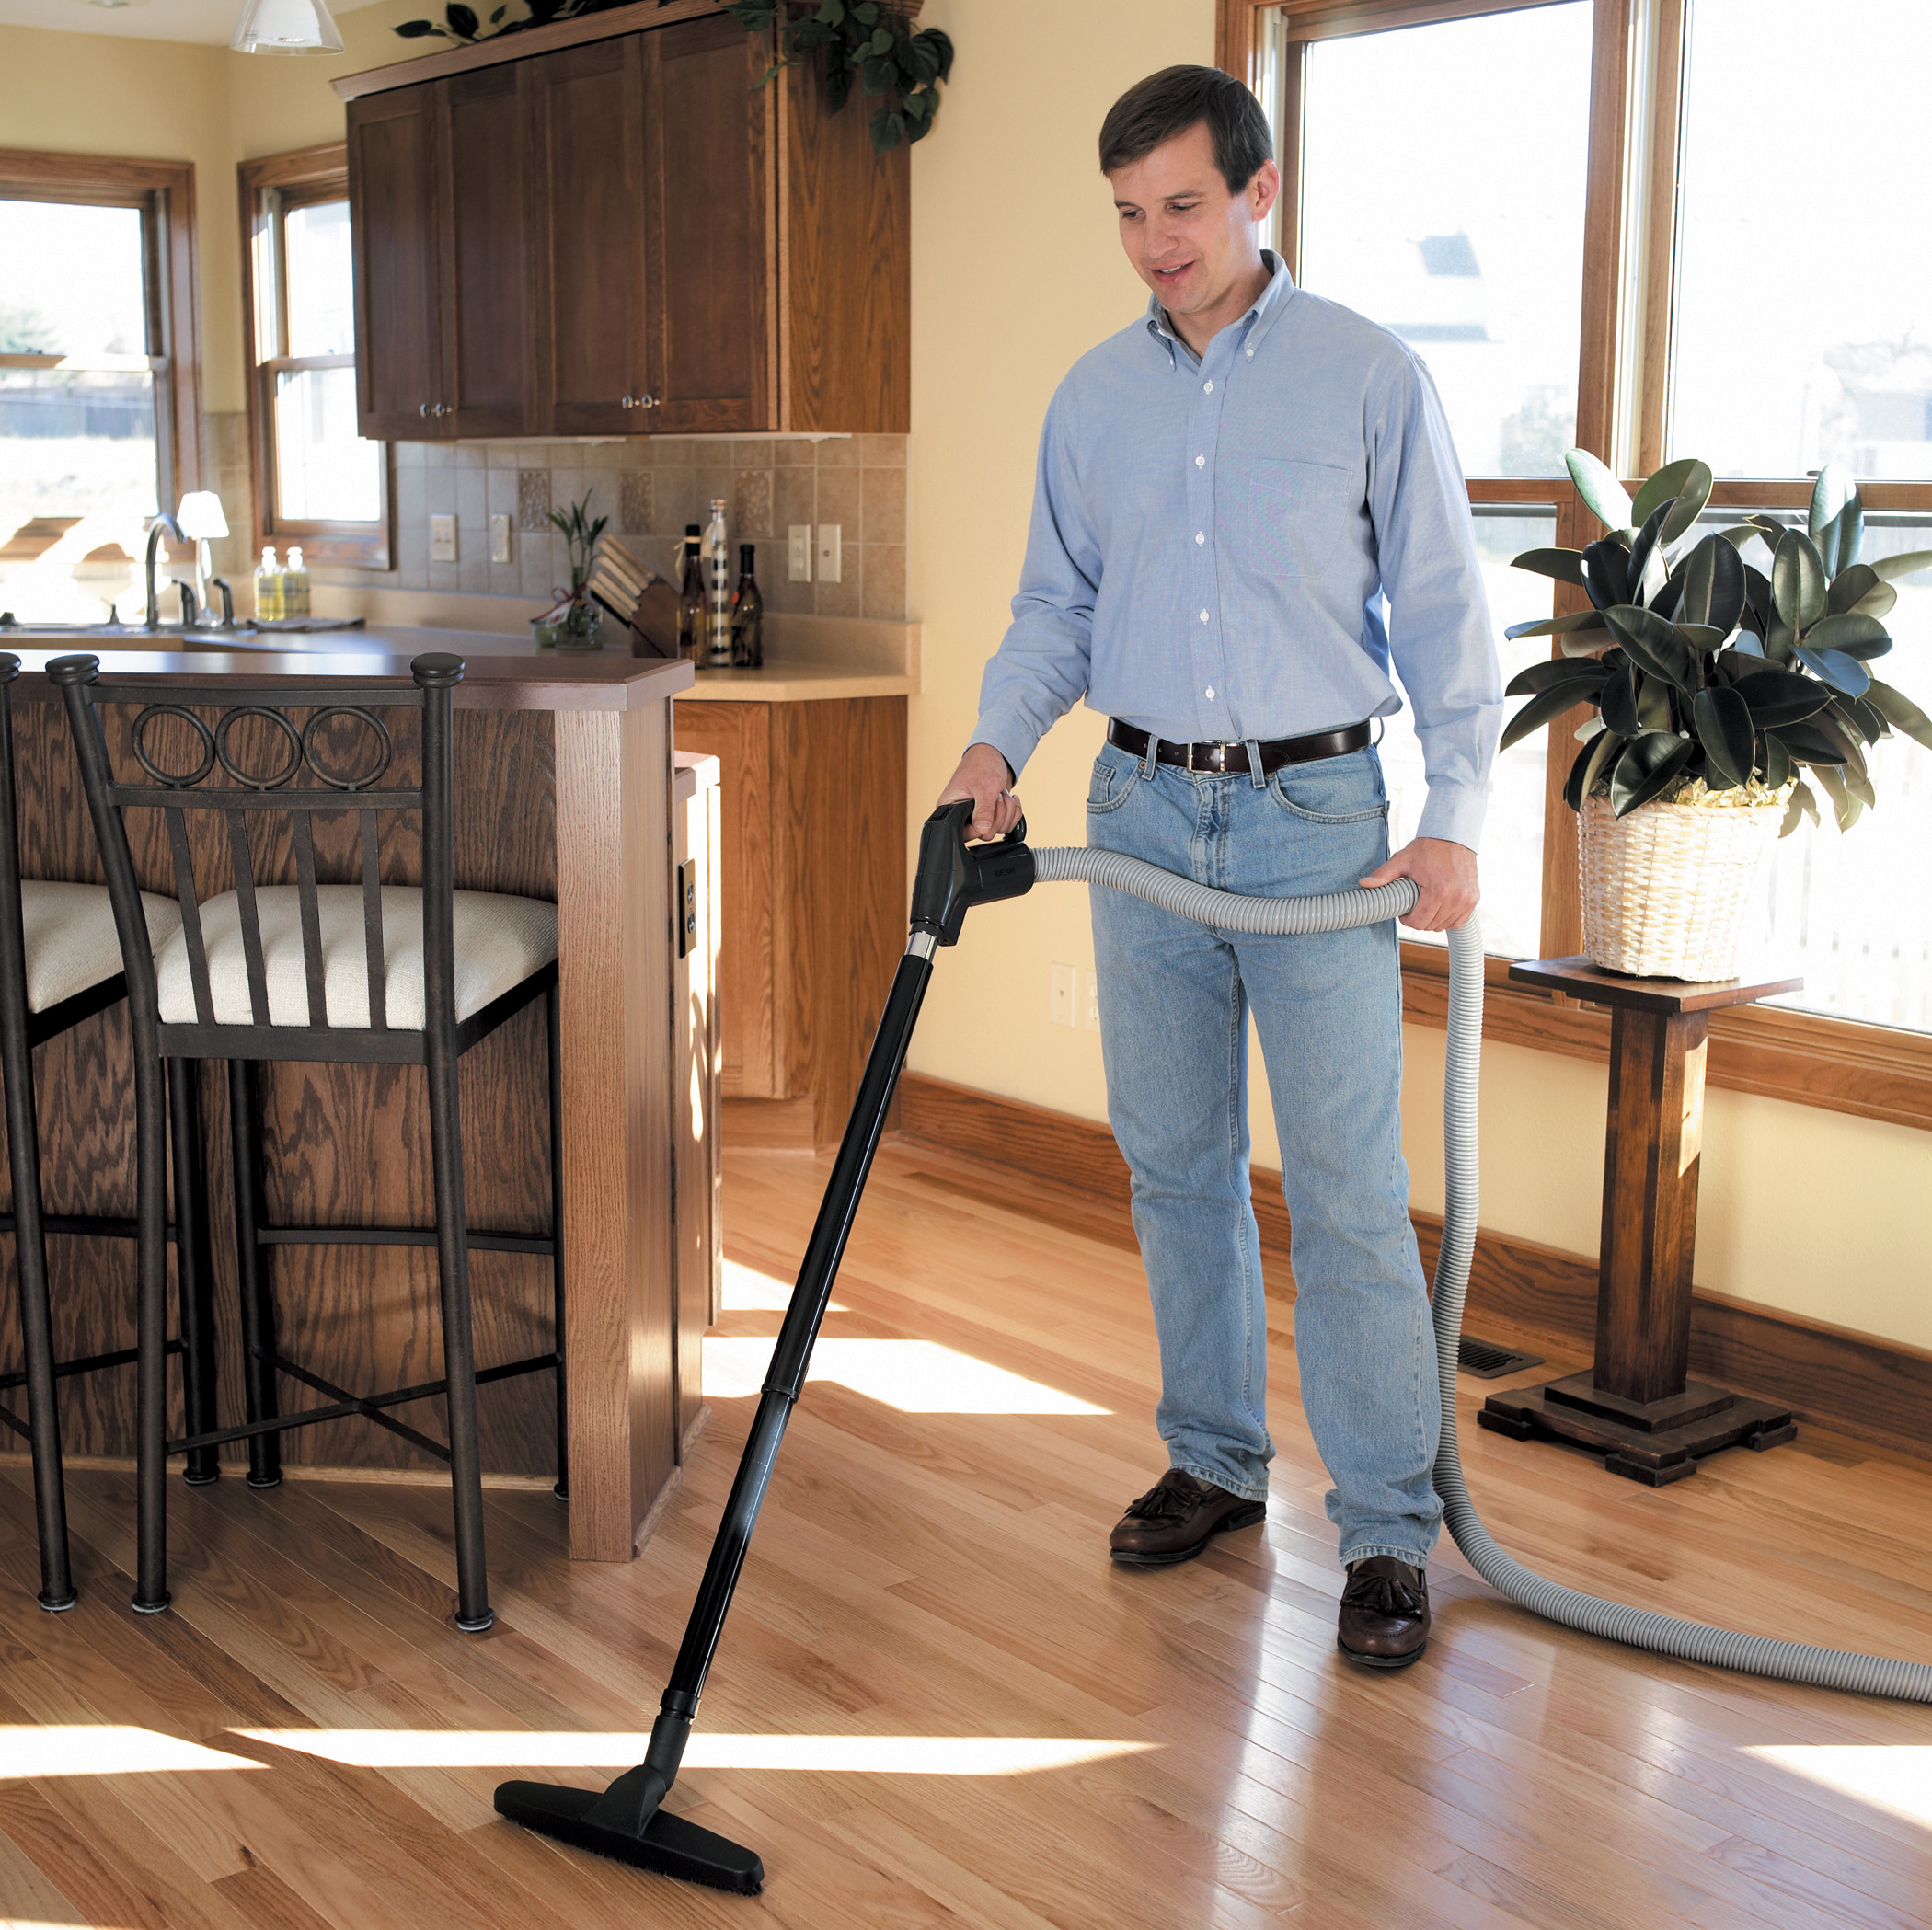 benefits of central vaccum